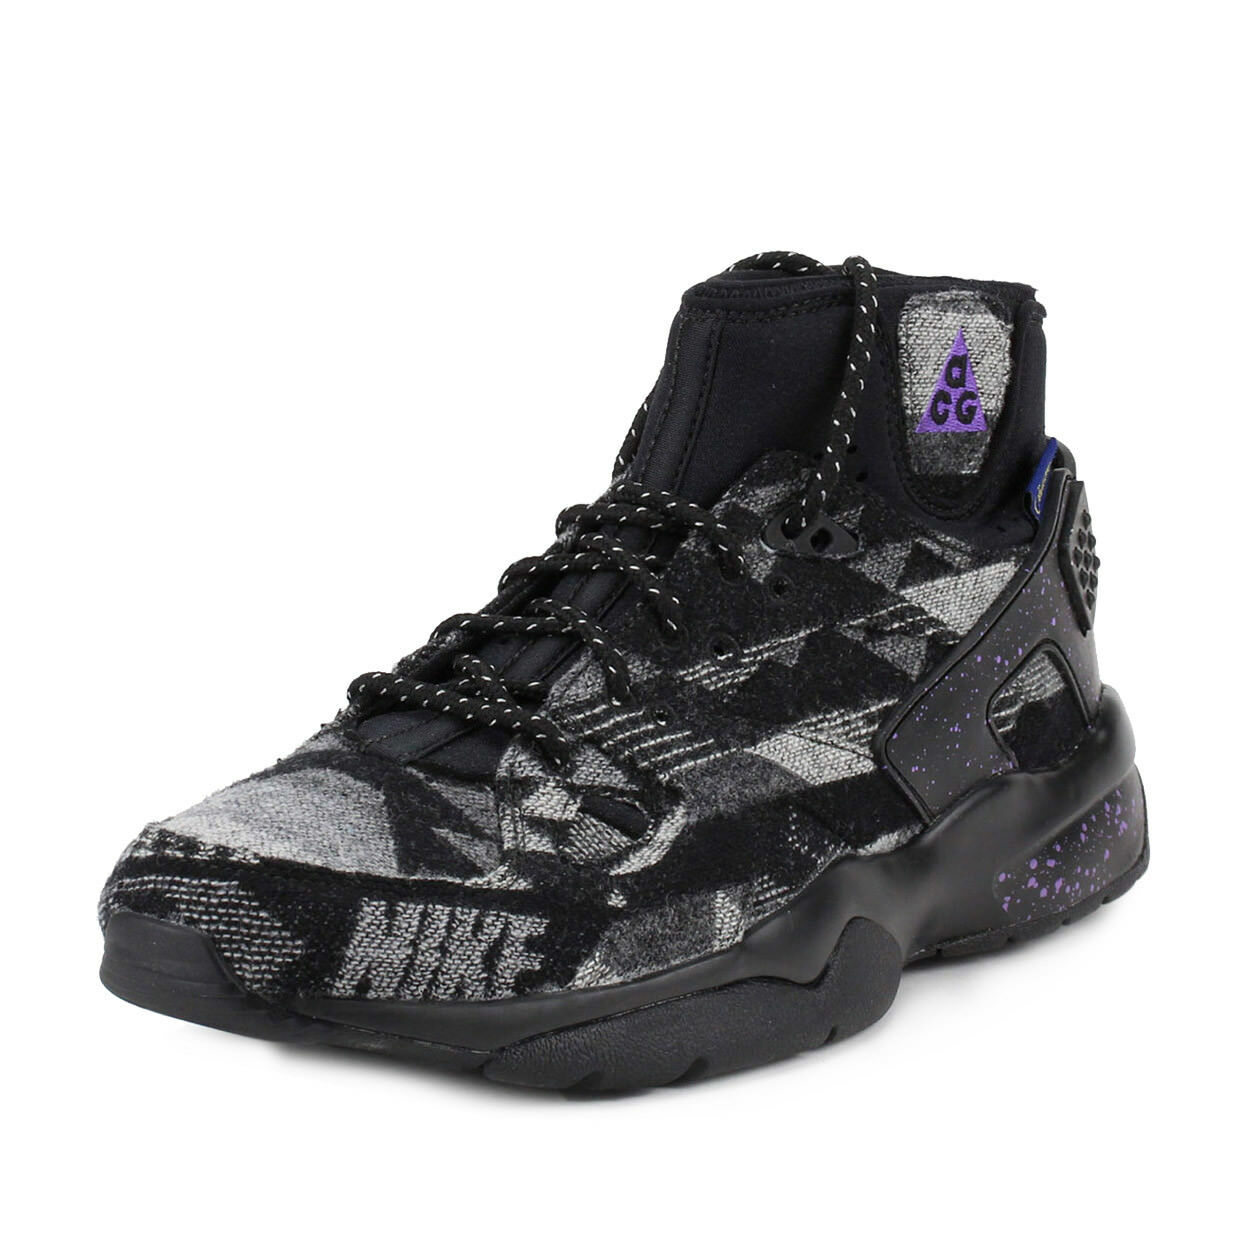 Nike Mens Air Mowabb by BDGA Black Grey HO17-MNSELB-886 EXTREMELY LIMITED